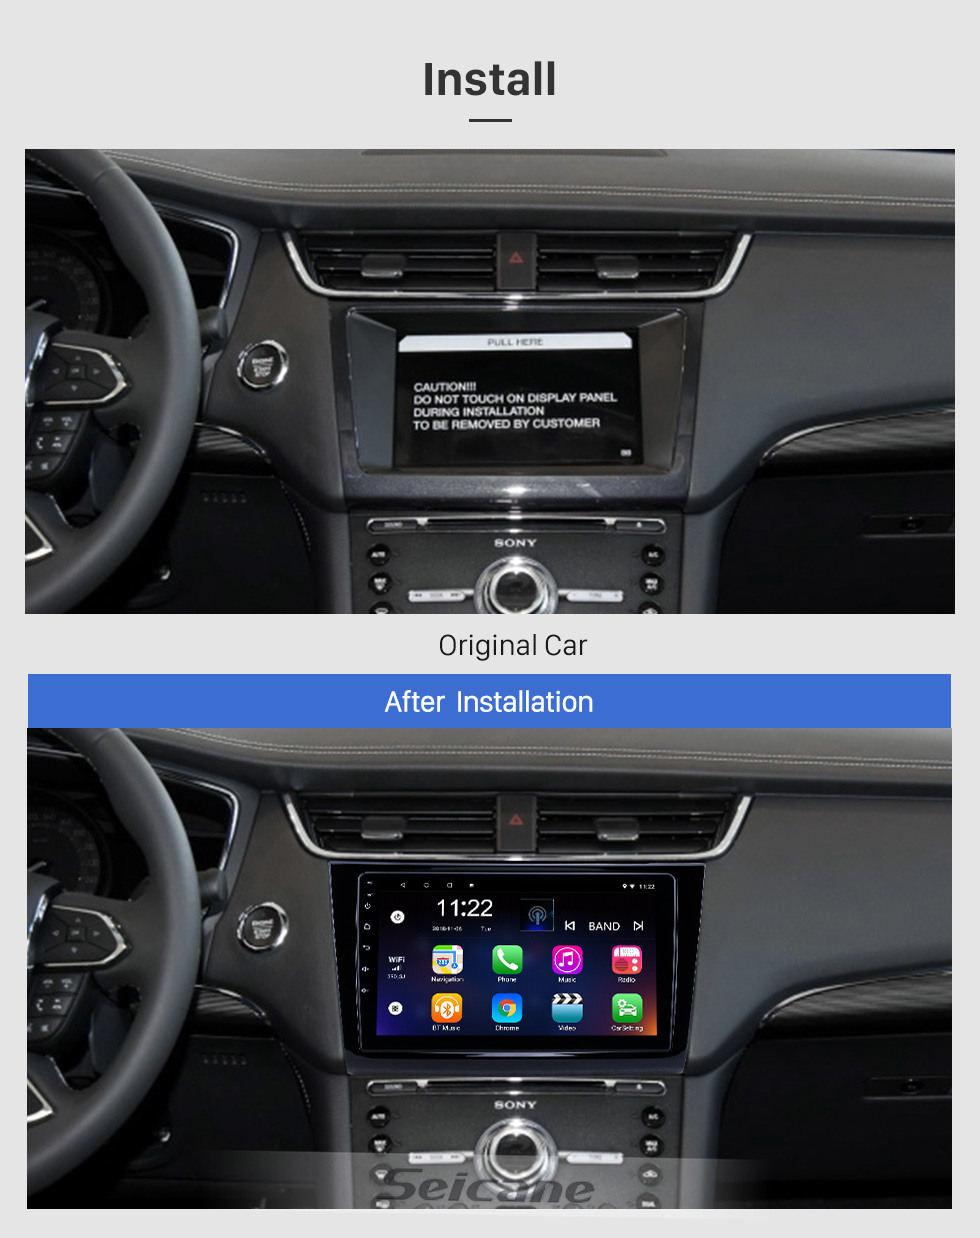 Seicane HD Touchscreen 9 inch Android 10.0 GPS Navigation Radio for 2015-2018 Ford Taurus with Bluetooth AUX WIFI support Carplay TPMS DAB+